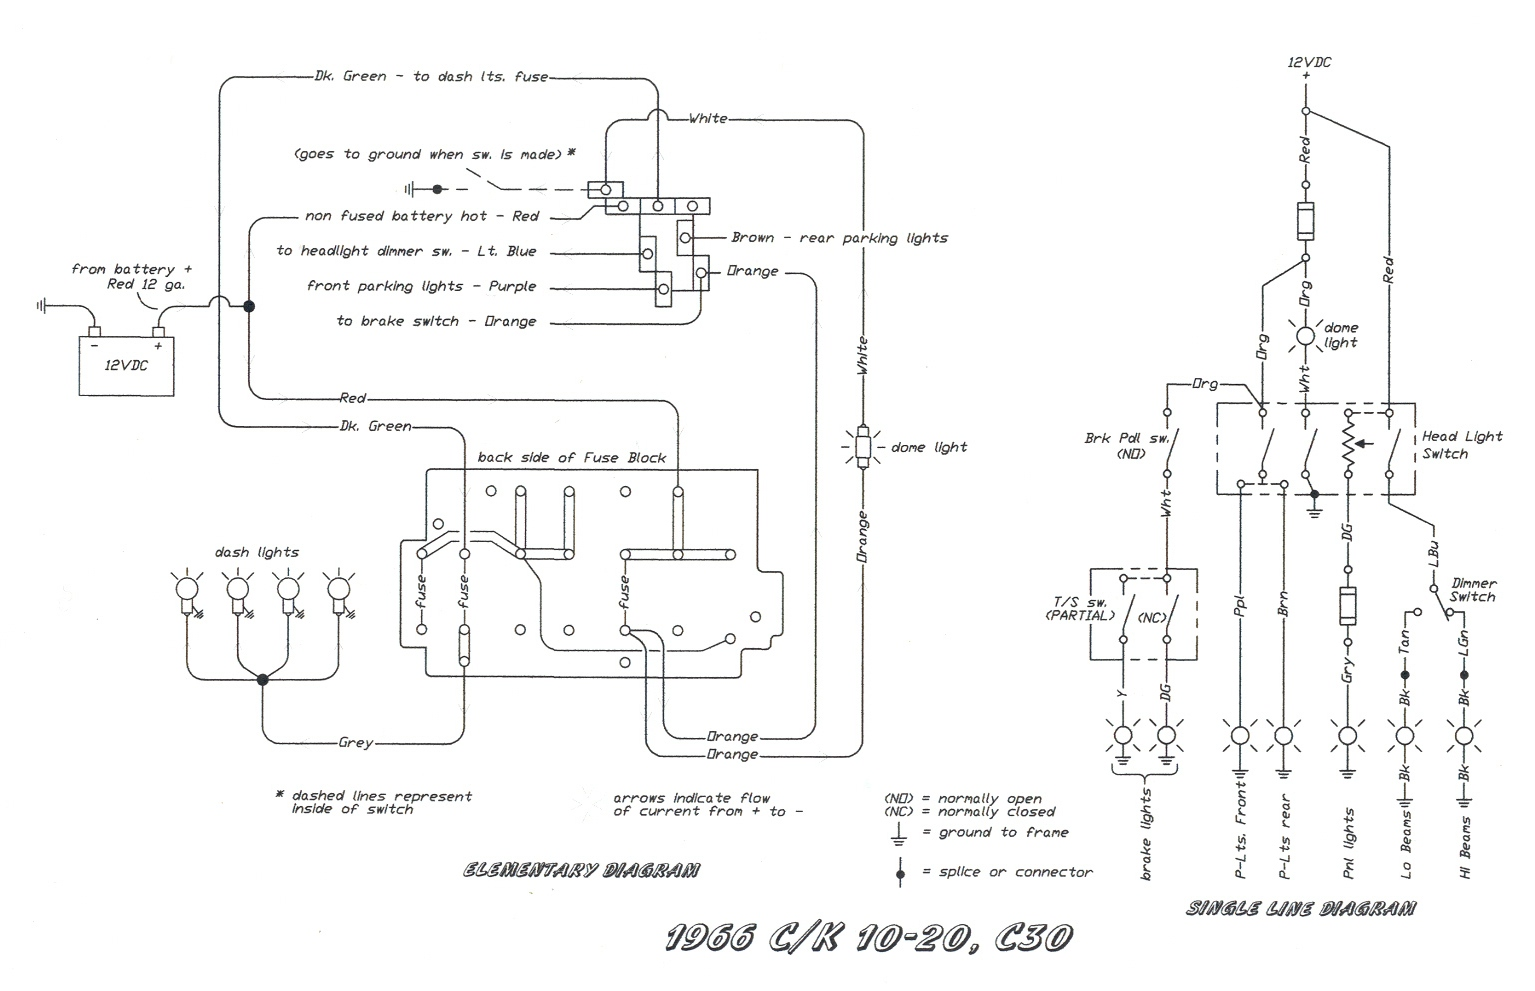 Chevy Truck Headlight Switch Wiring Trusted Diagram 2001 Ford Diagrams 62 Schematic 1994 Dodge